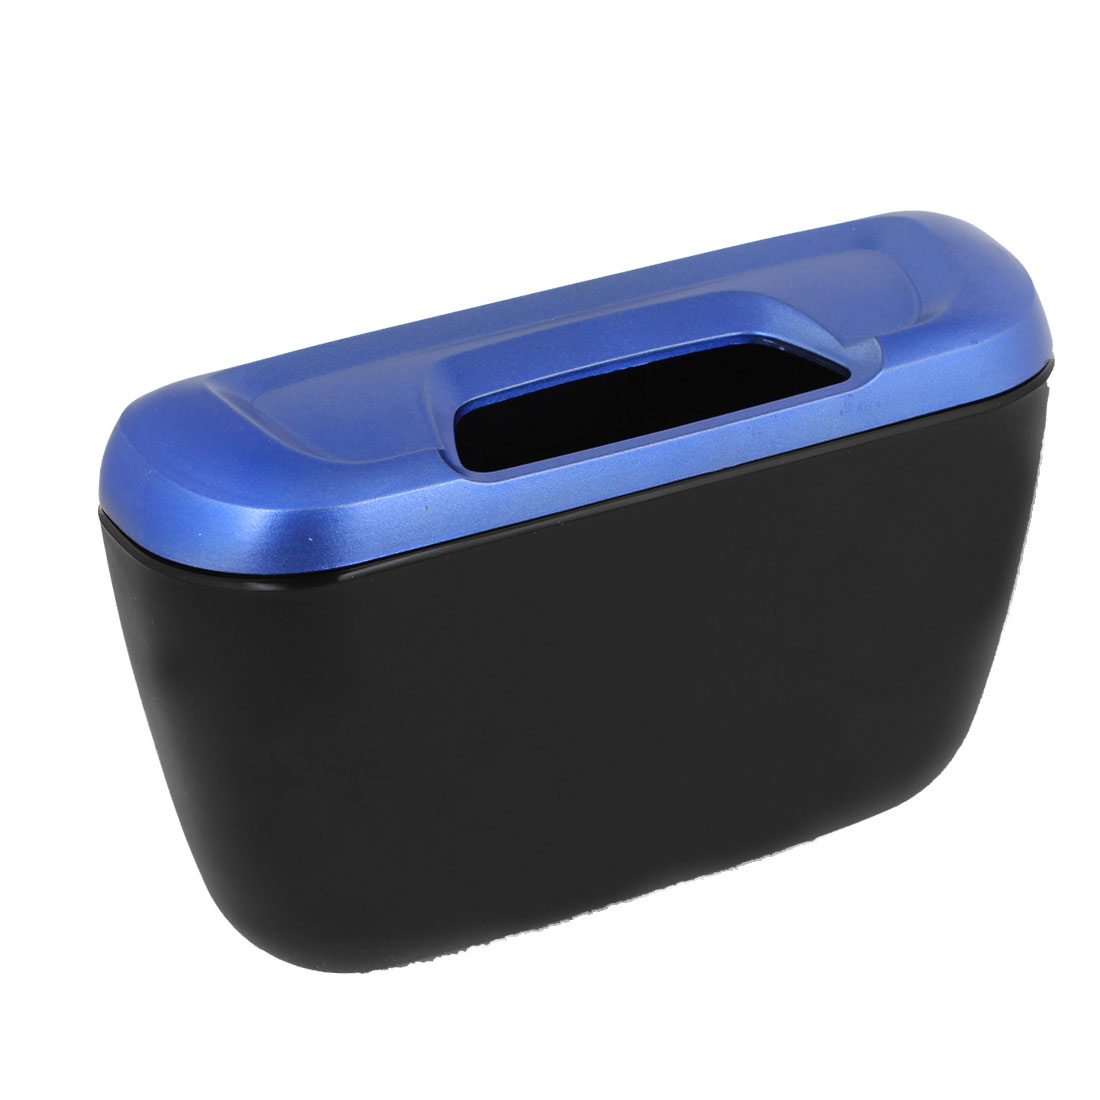 Van Car Truck Black Blue Plastic Shell Interior Garbage Bin Can Holder